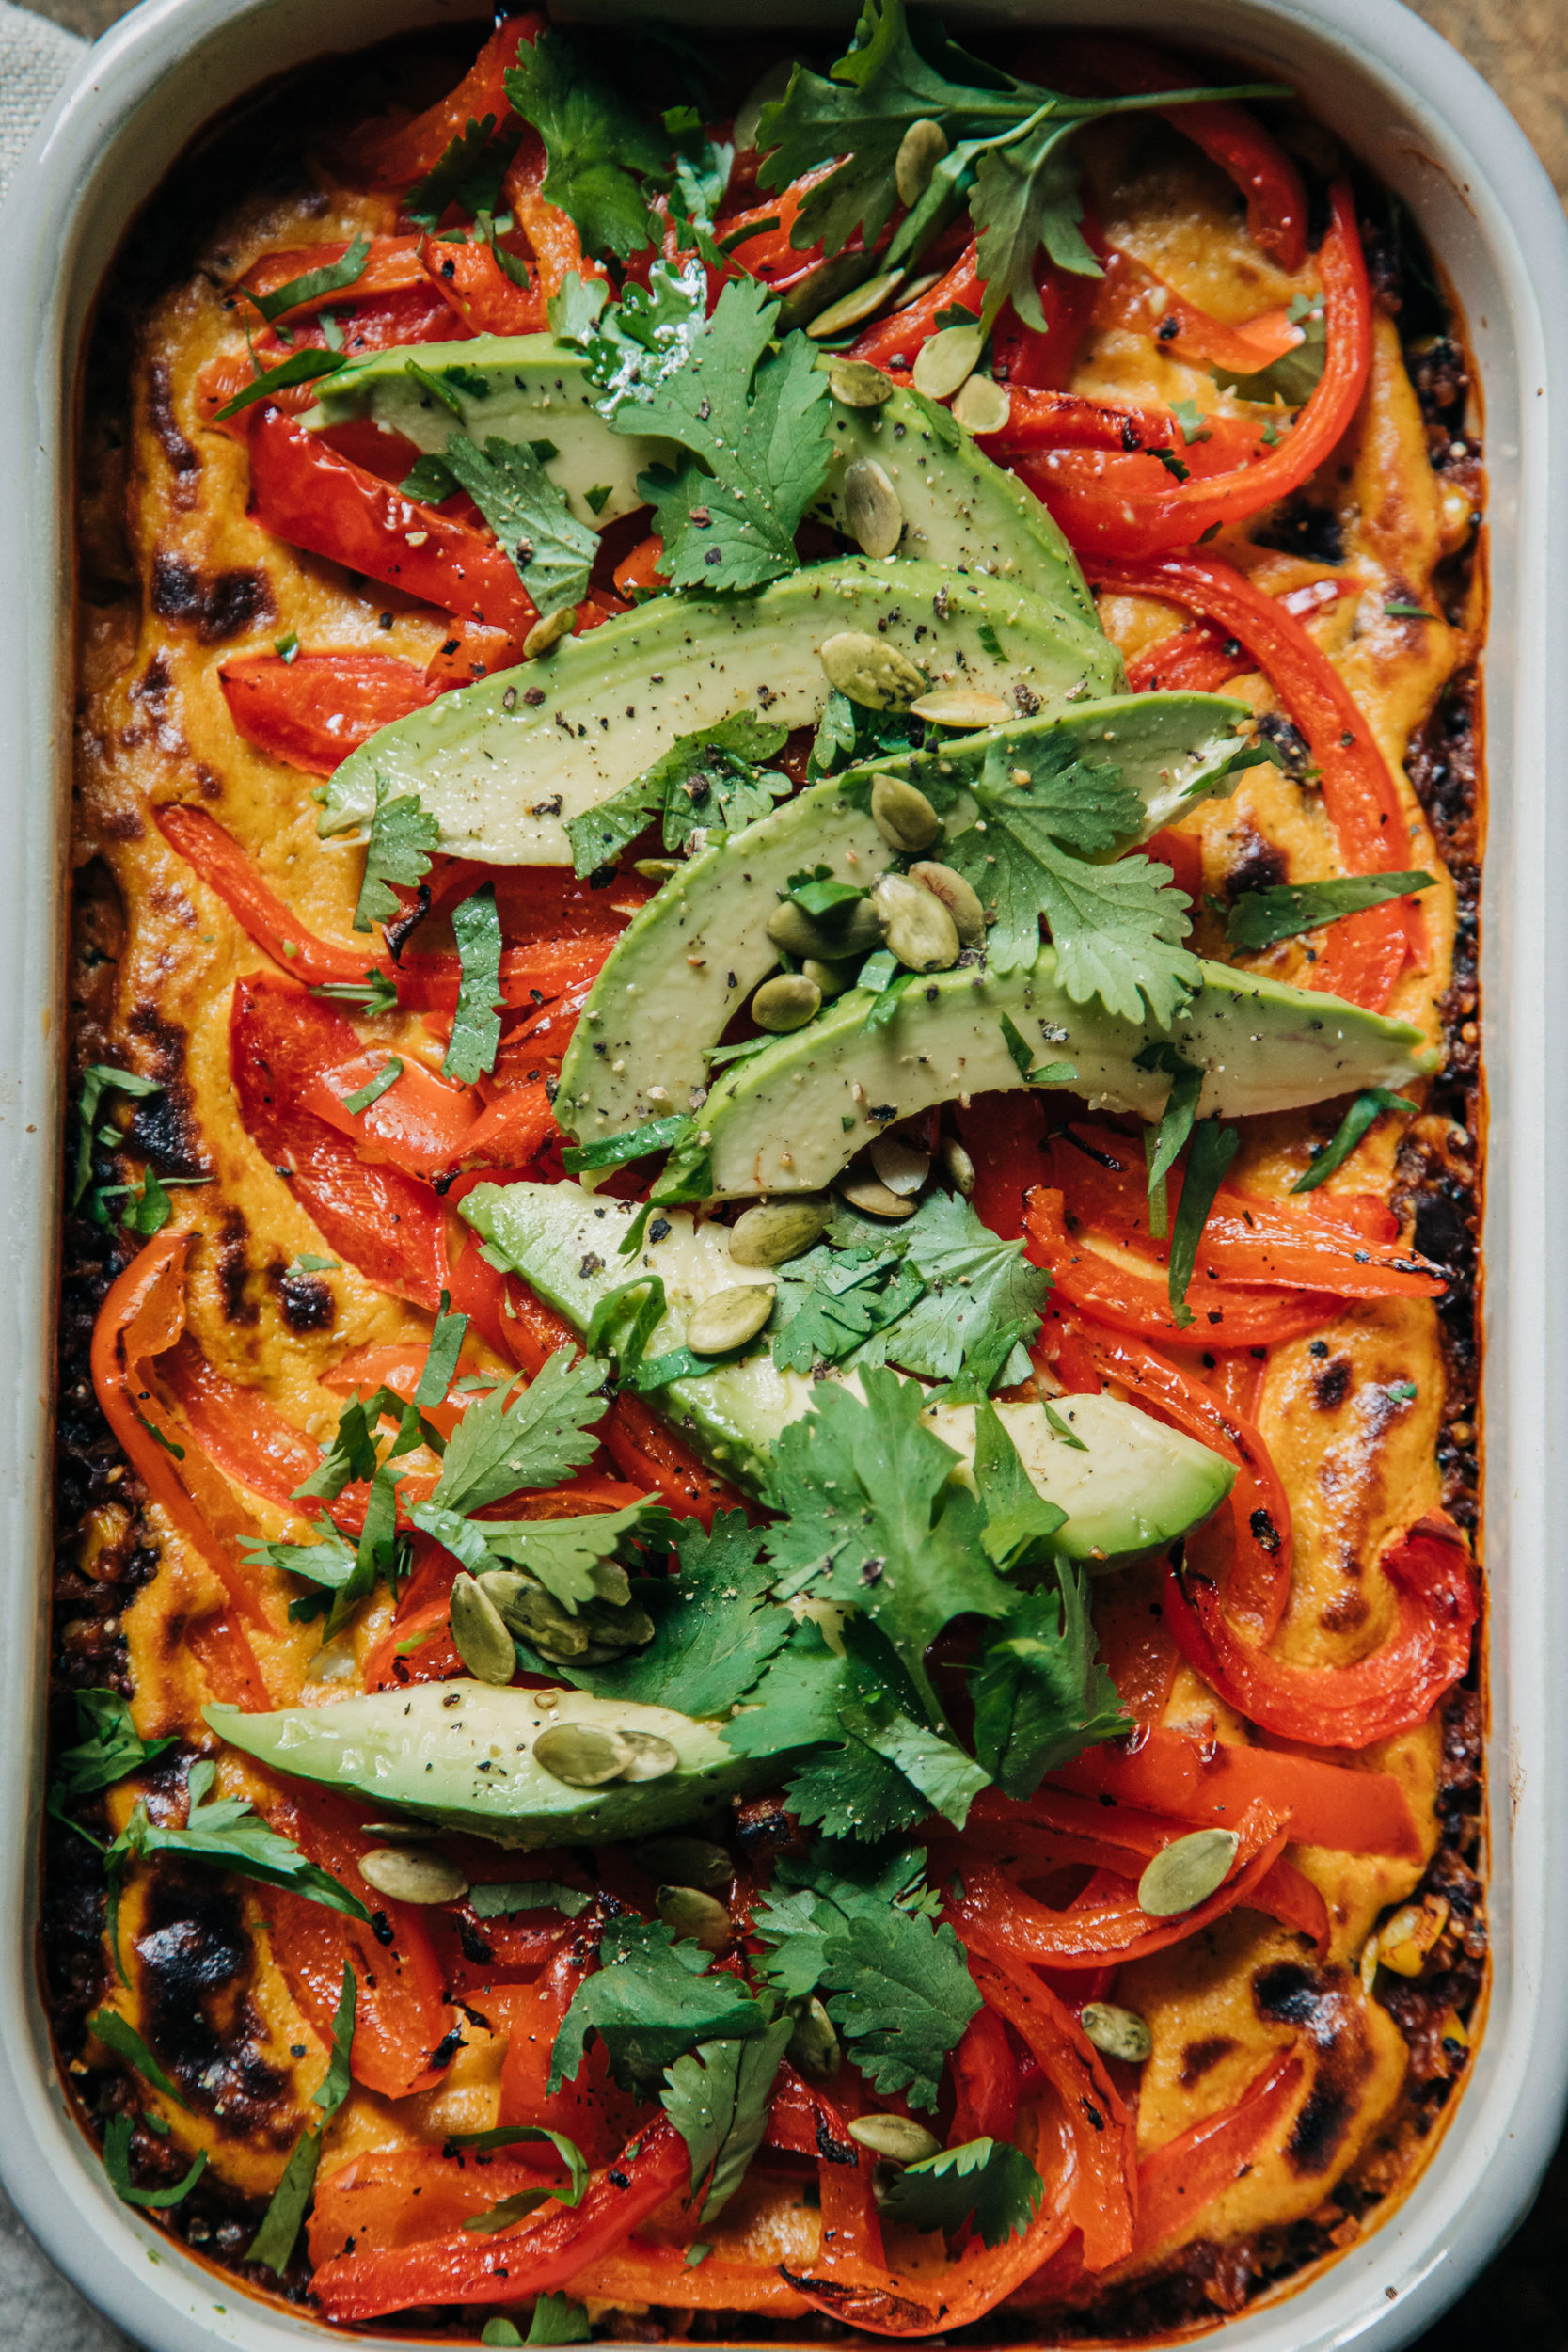 An overhead shot of a vegan casserole topped with sautéed bell peppers, avocado, and chopped cilantro. The casserole dish is white.